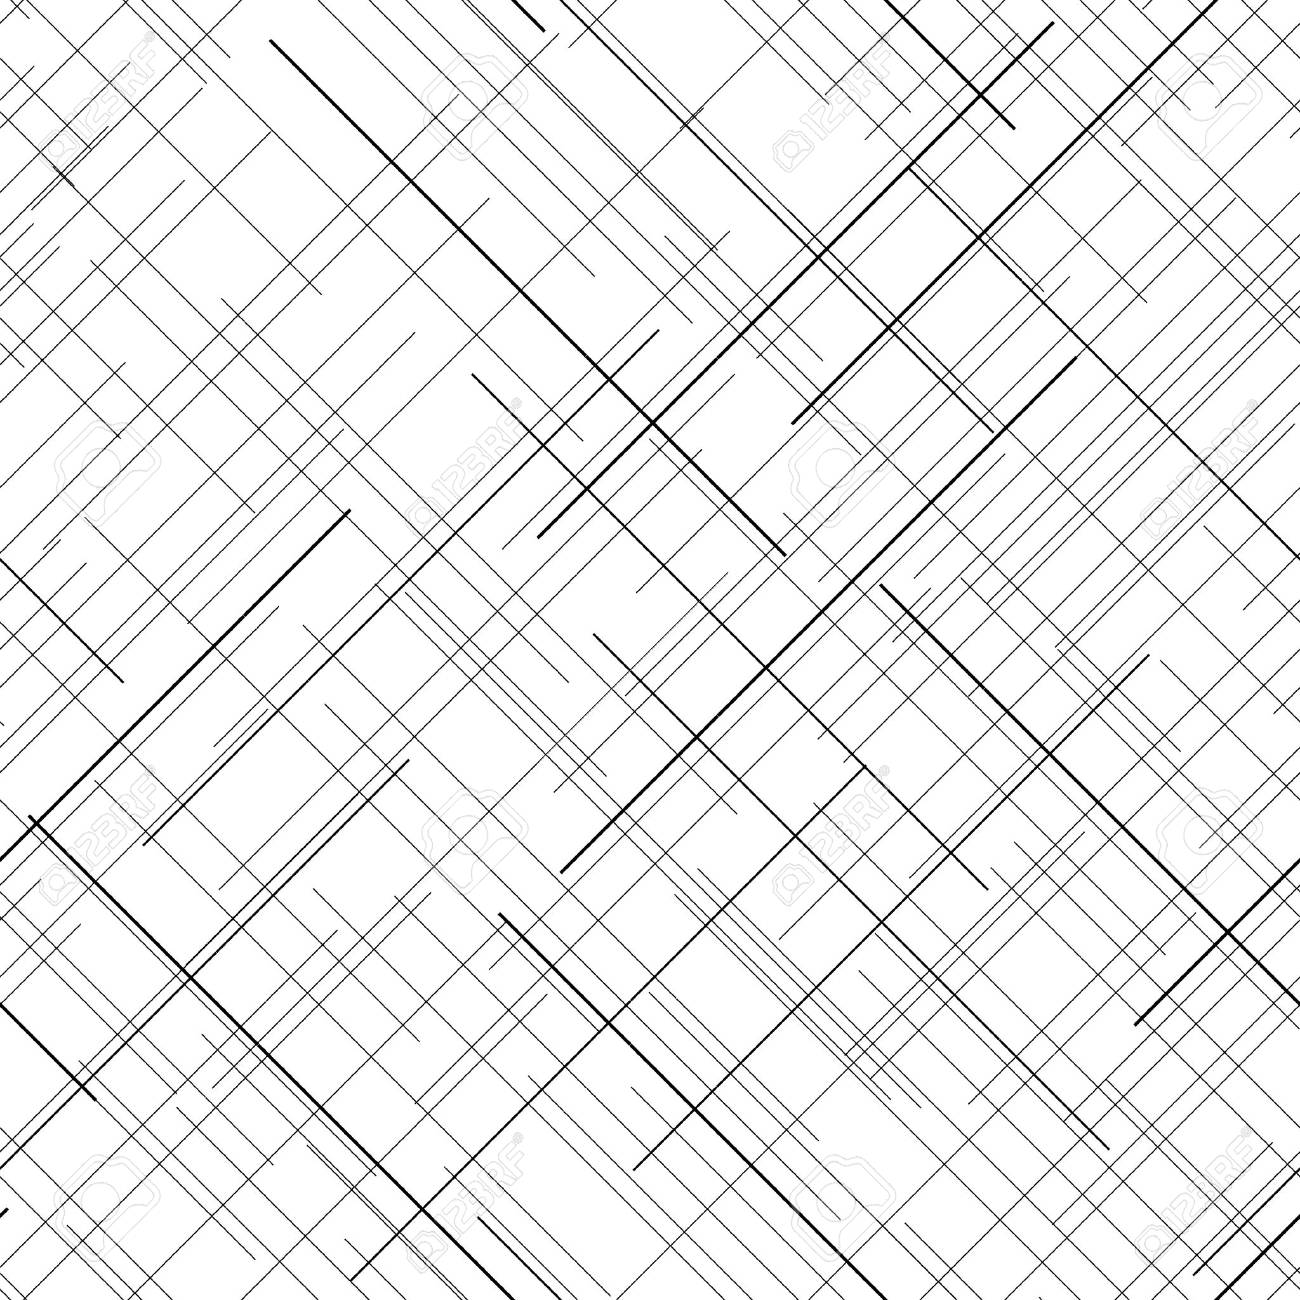 1300x1300 Black And White Abstract Backdrop. Plaid Fabric Texture. Random